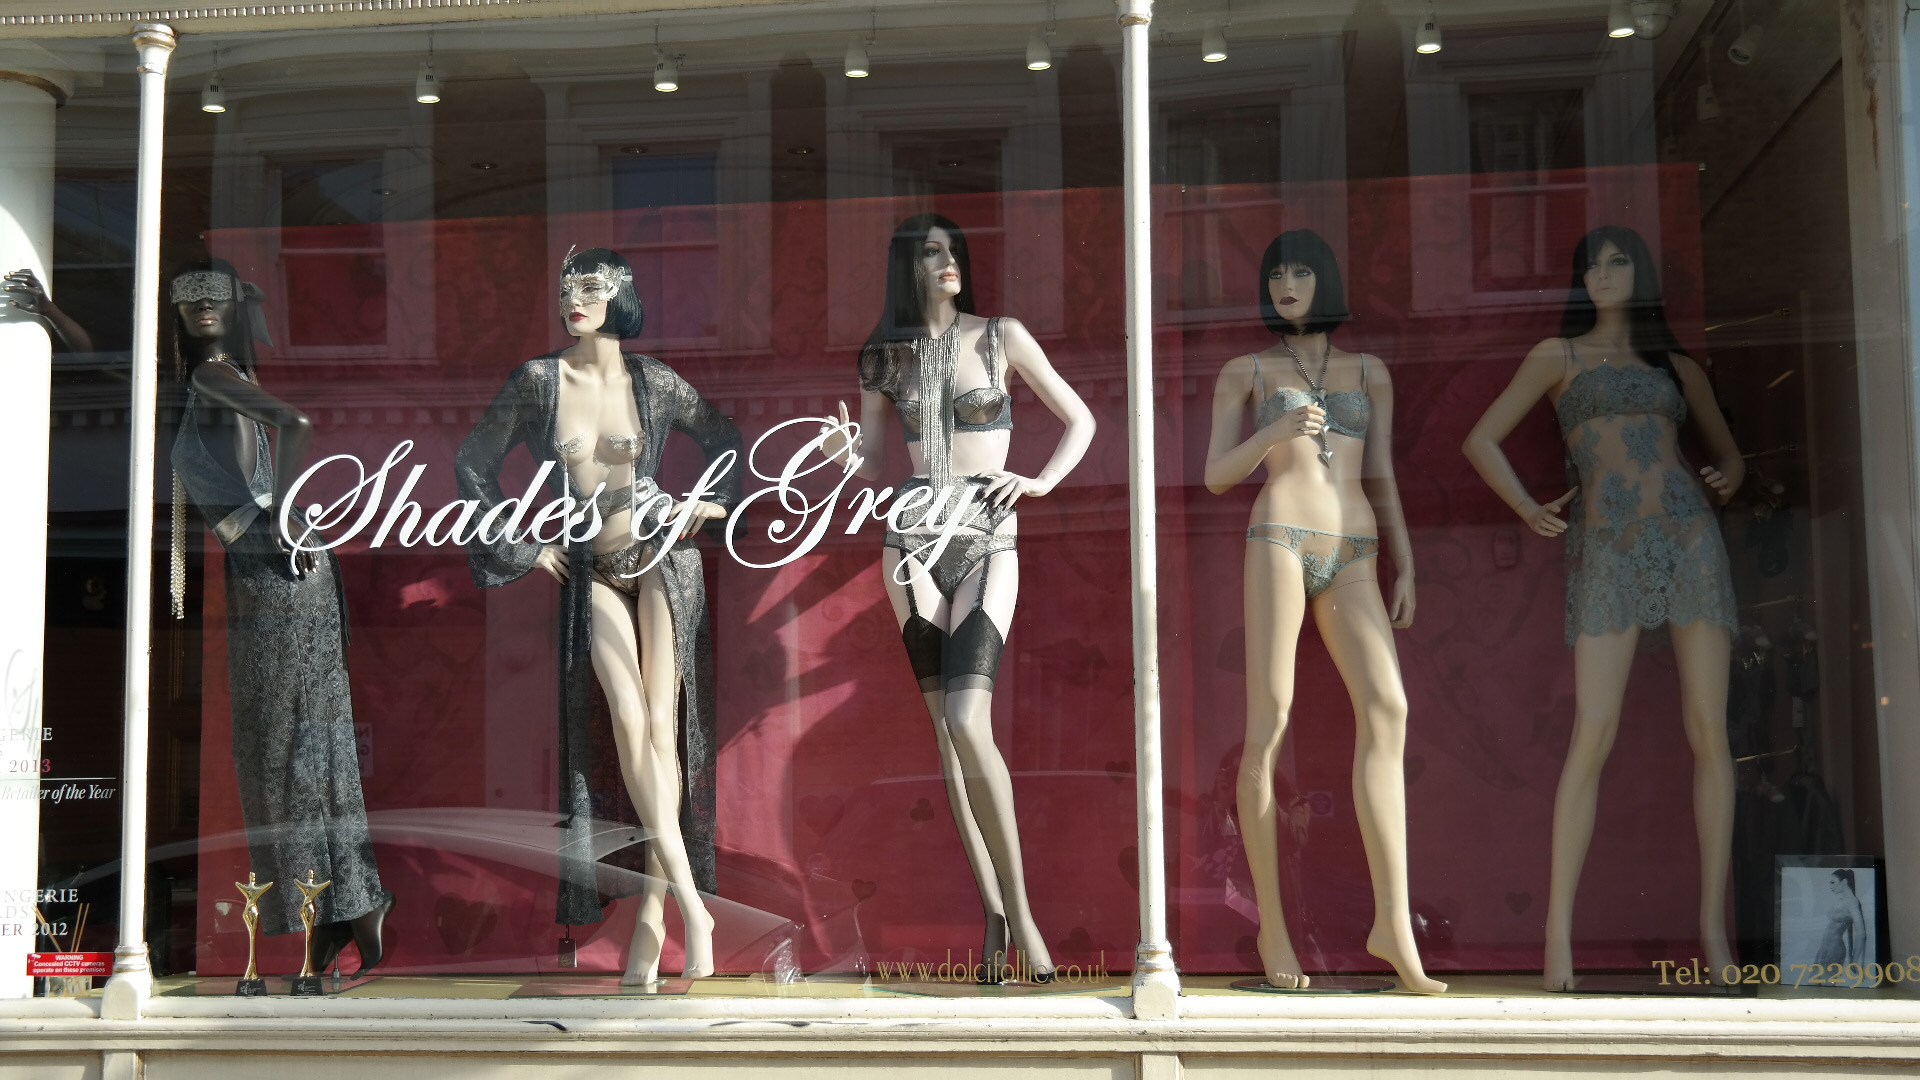 An erotic shop with lingerie in shades of grey, a top design for Valentine's day event.